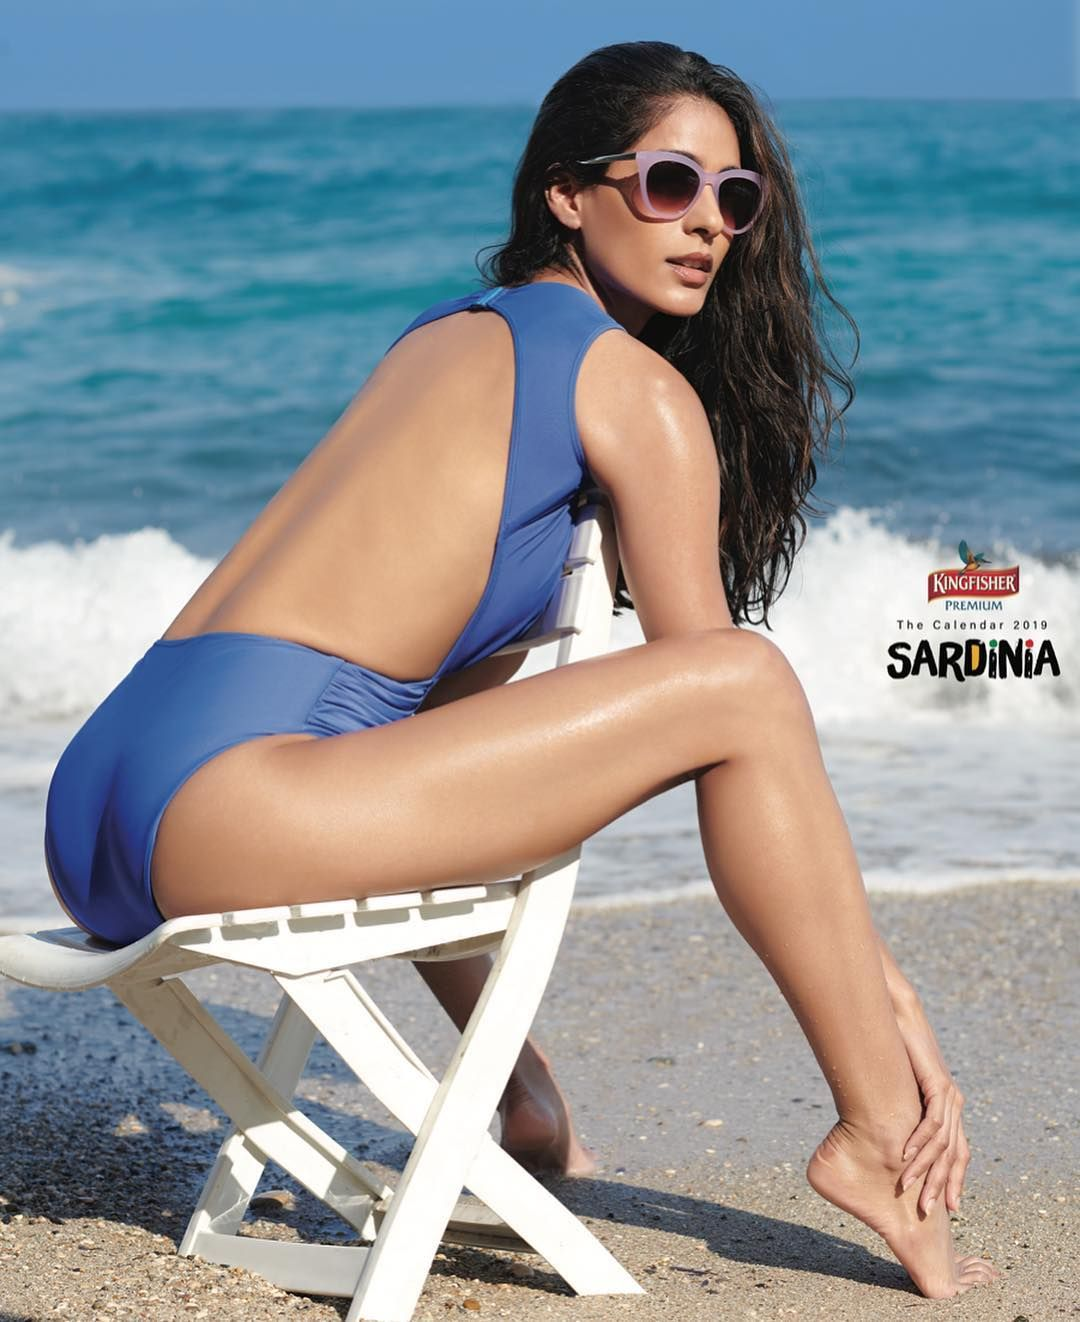 The Gorgeous Diva Dhawan Photographed At The Edge Of The Water On